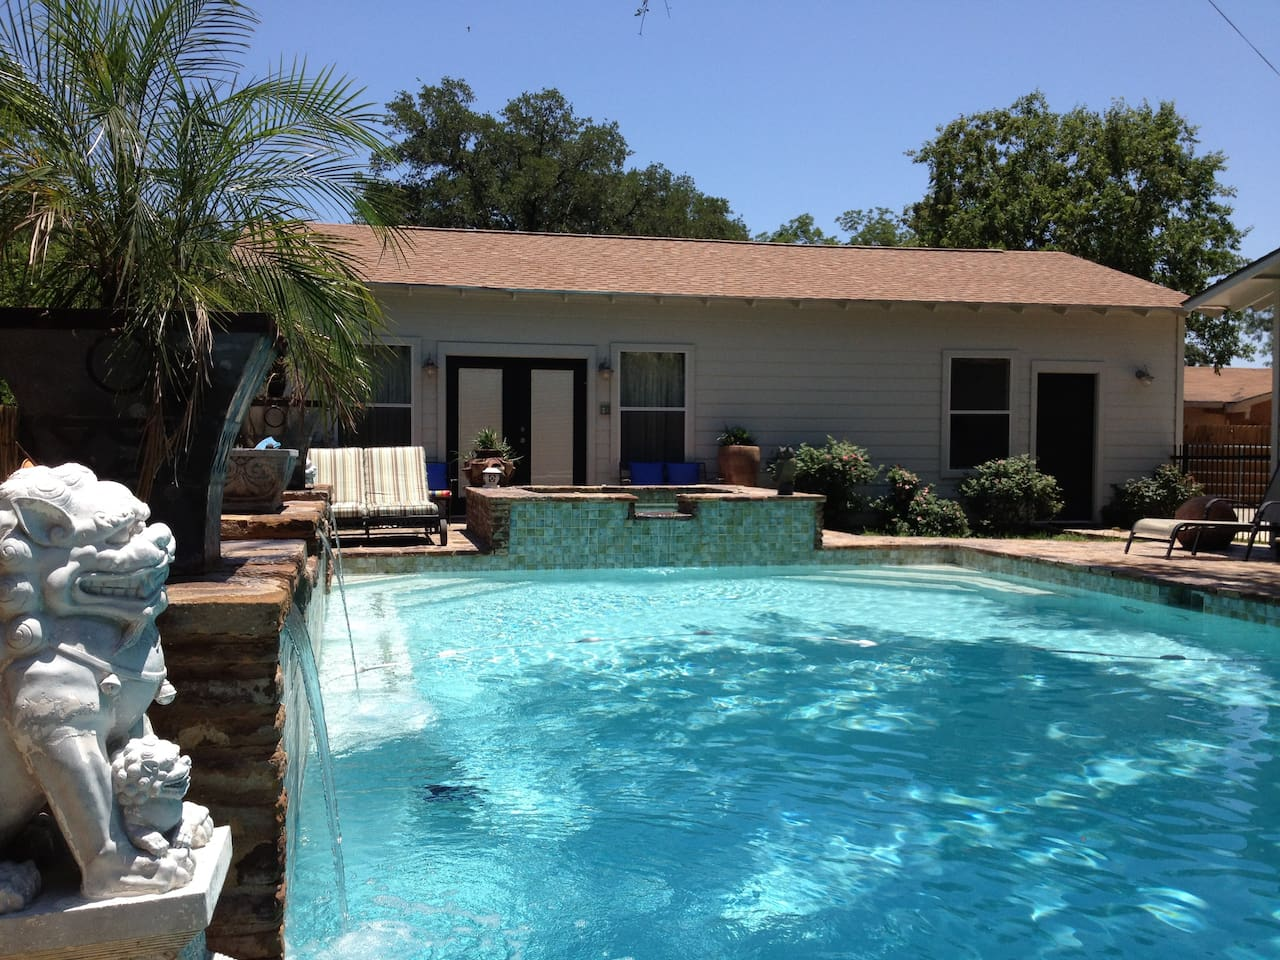 Shangri Loyd is a custom cabana tucked in a lush and private setting in the heart of Burnet. Sleep to the peaceful sounds of pool waterfalls and enjoy the view through picture windows and french patio doors.